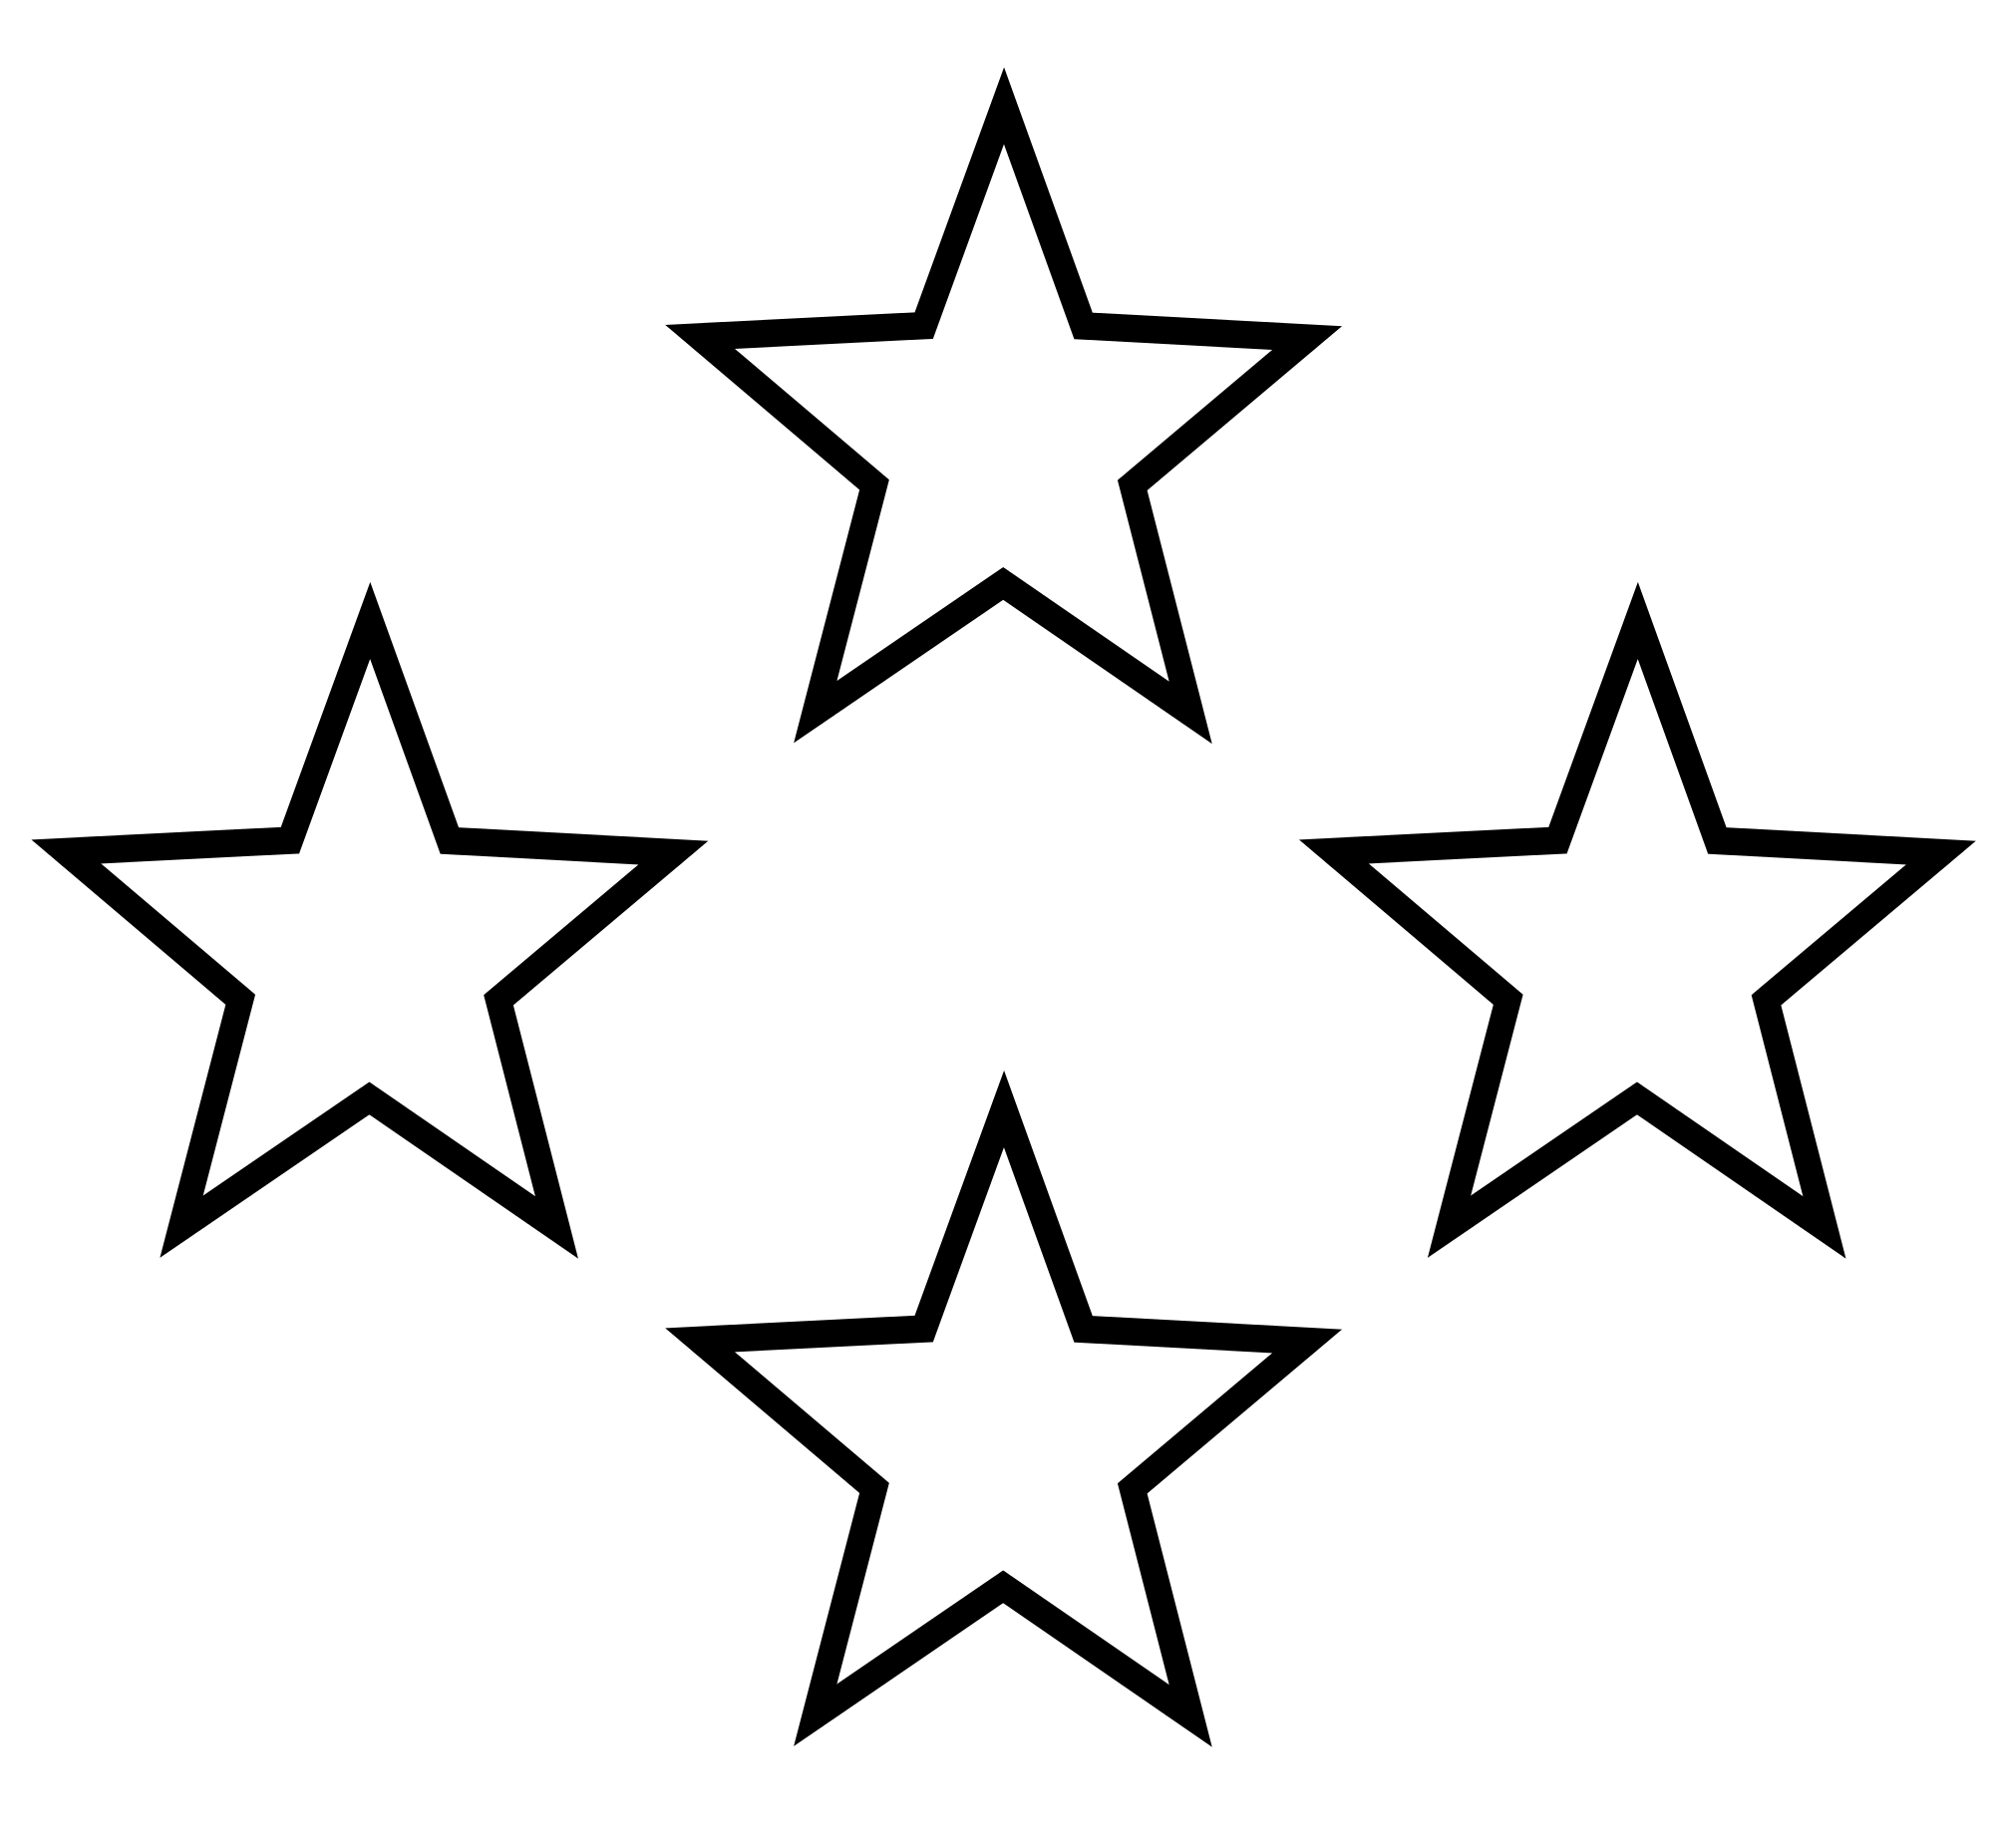 Black and white star clipart png clip black and white File:White Stars 4.svg - Wikimedia Commons clip black and white